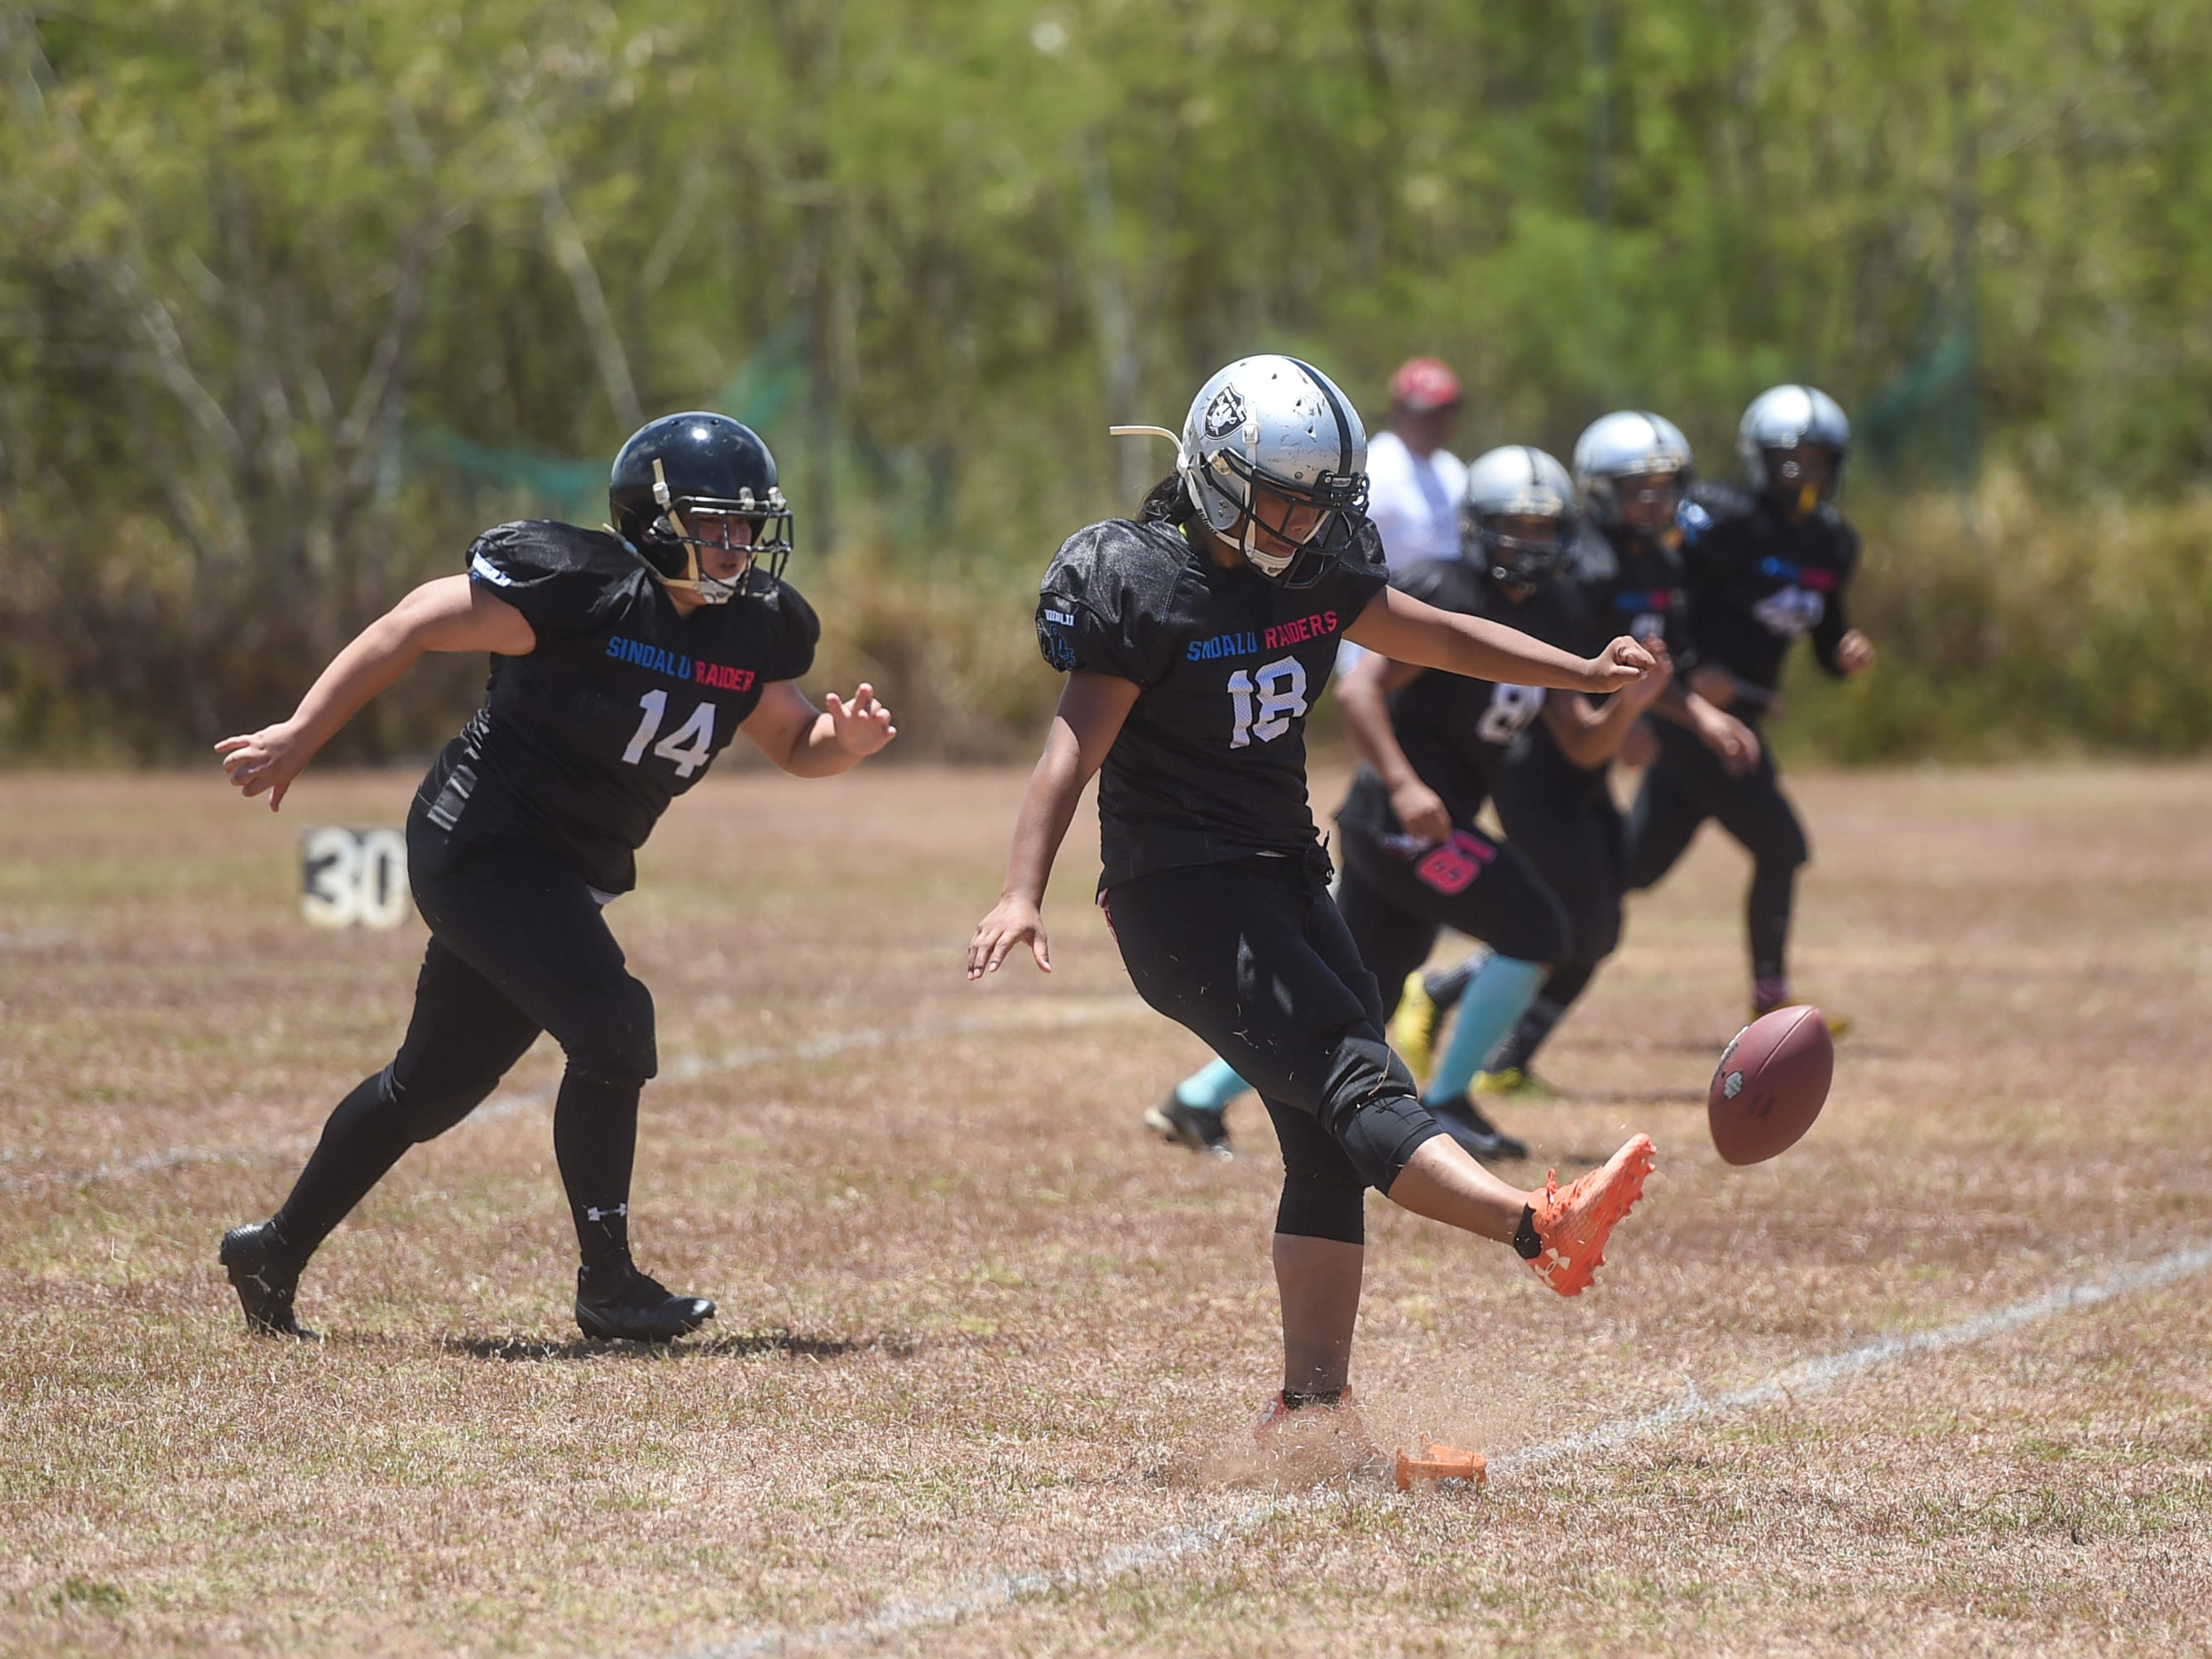 Sindalu/Raiders player Leticia Blas (18) during a kickoff in her 2019 Bud Light GWTFL game against Legacy at the University of Guam Field in Mangilao, May 11, 2019. Legacy came away with a 20-0 victory for their second game of the season.